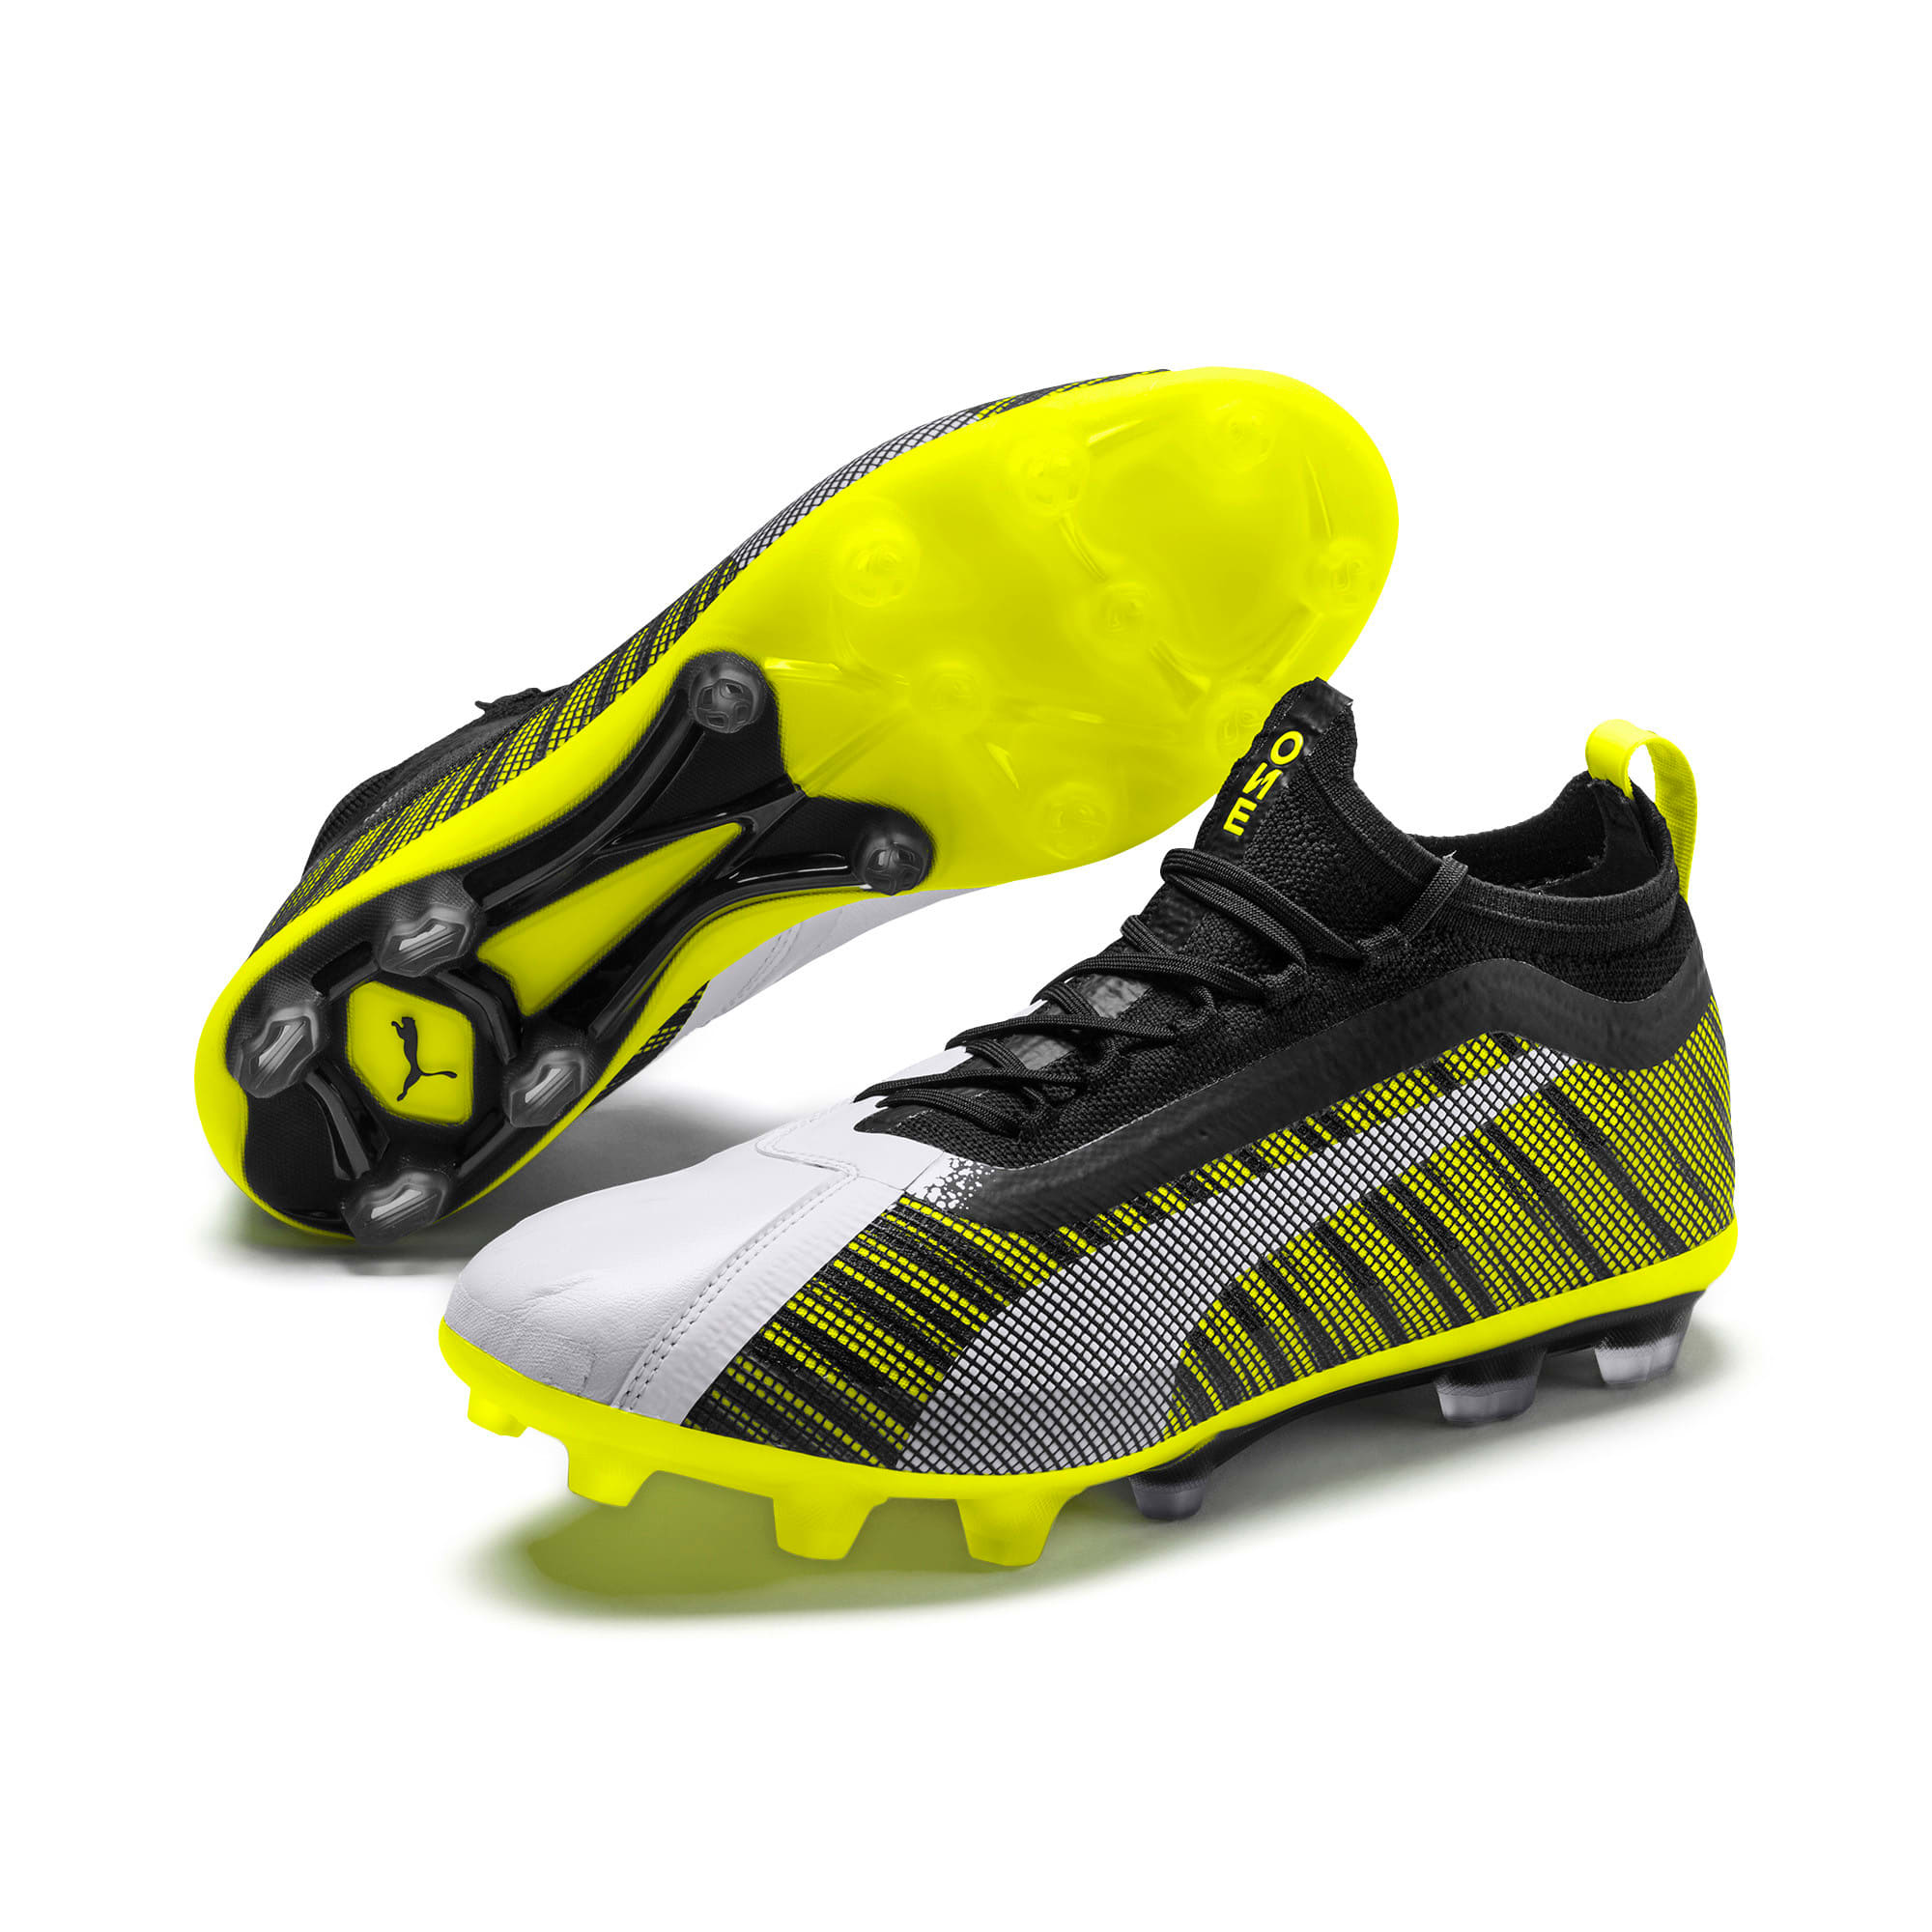 Thumbnail 2 of プーマ ワン 5.1 HG サッカースパイク, White-Black-Yellow Alert, medium-JPN